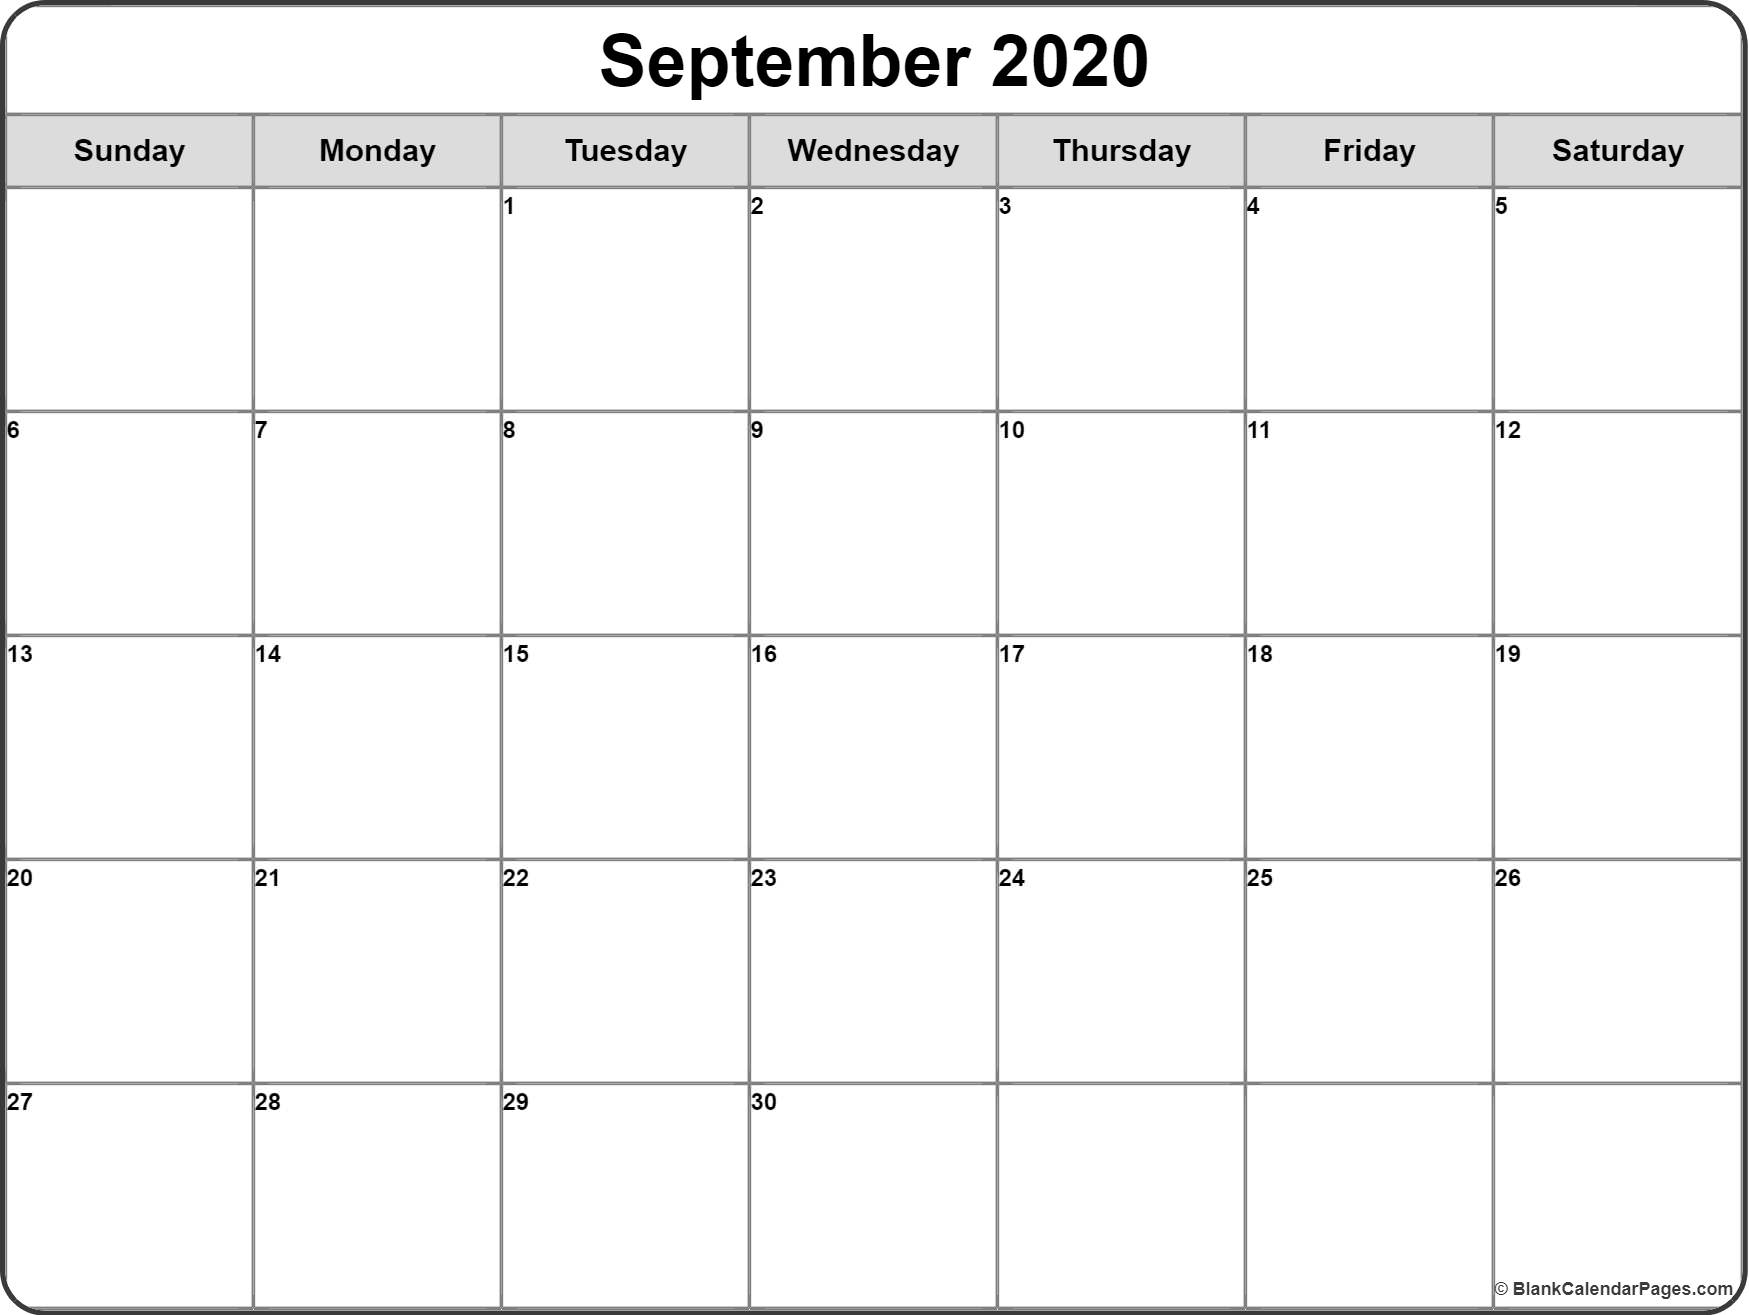 September 2020 Calendar | Free Printable Monthly Calendars pertaining to Free Fill In Printable Calendars